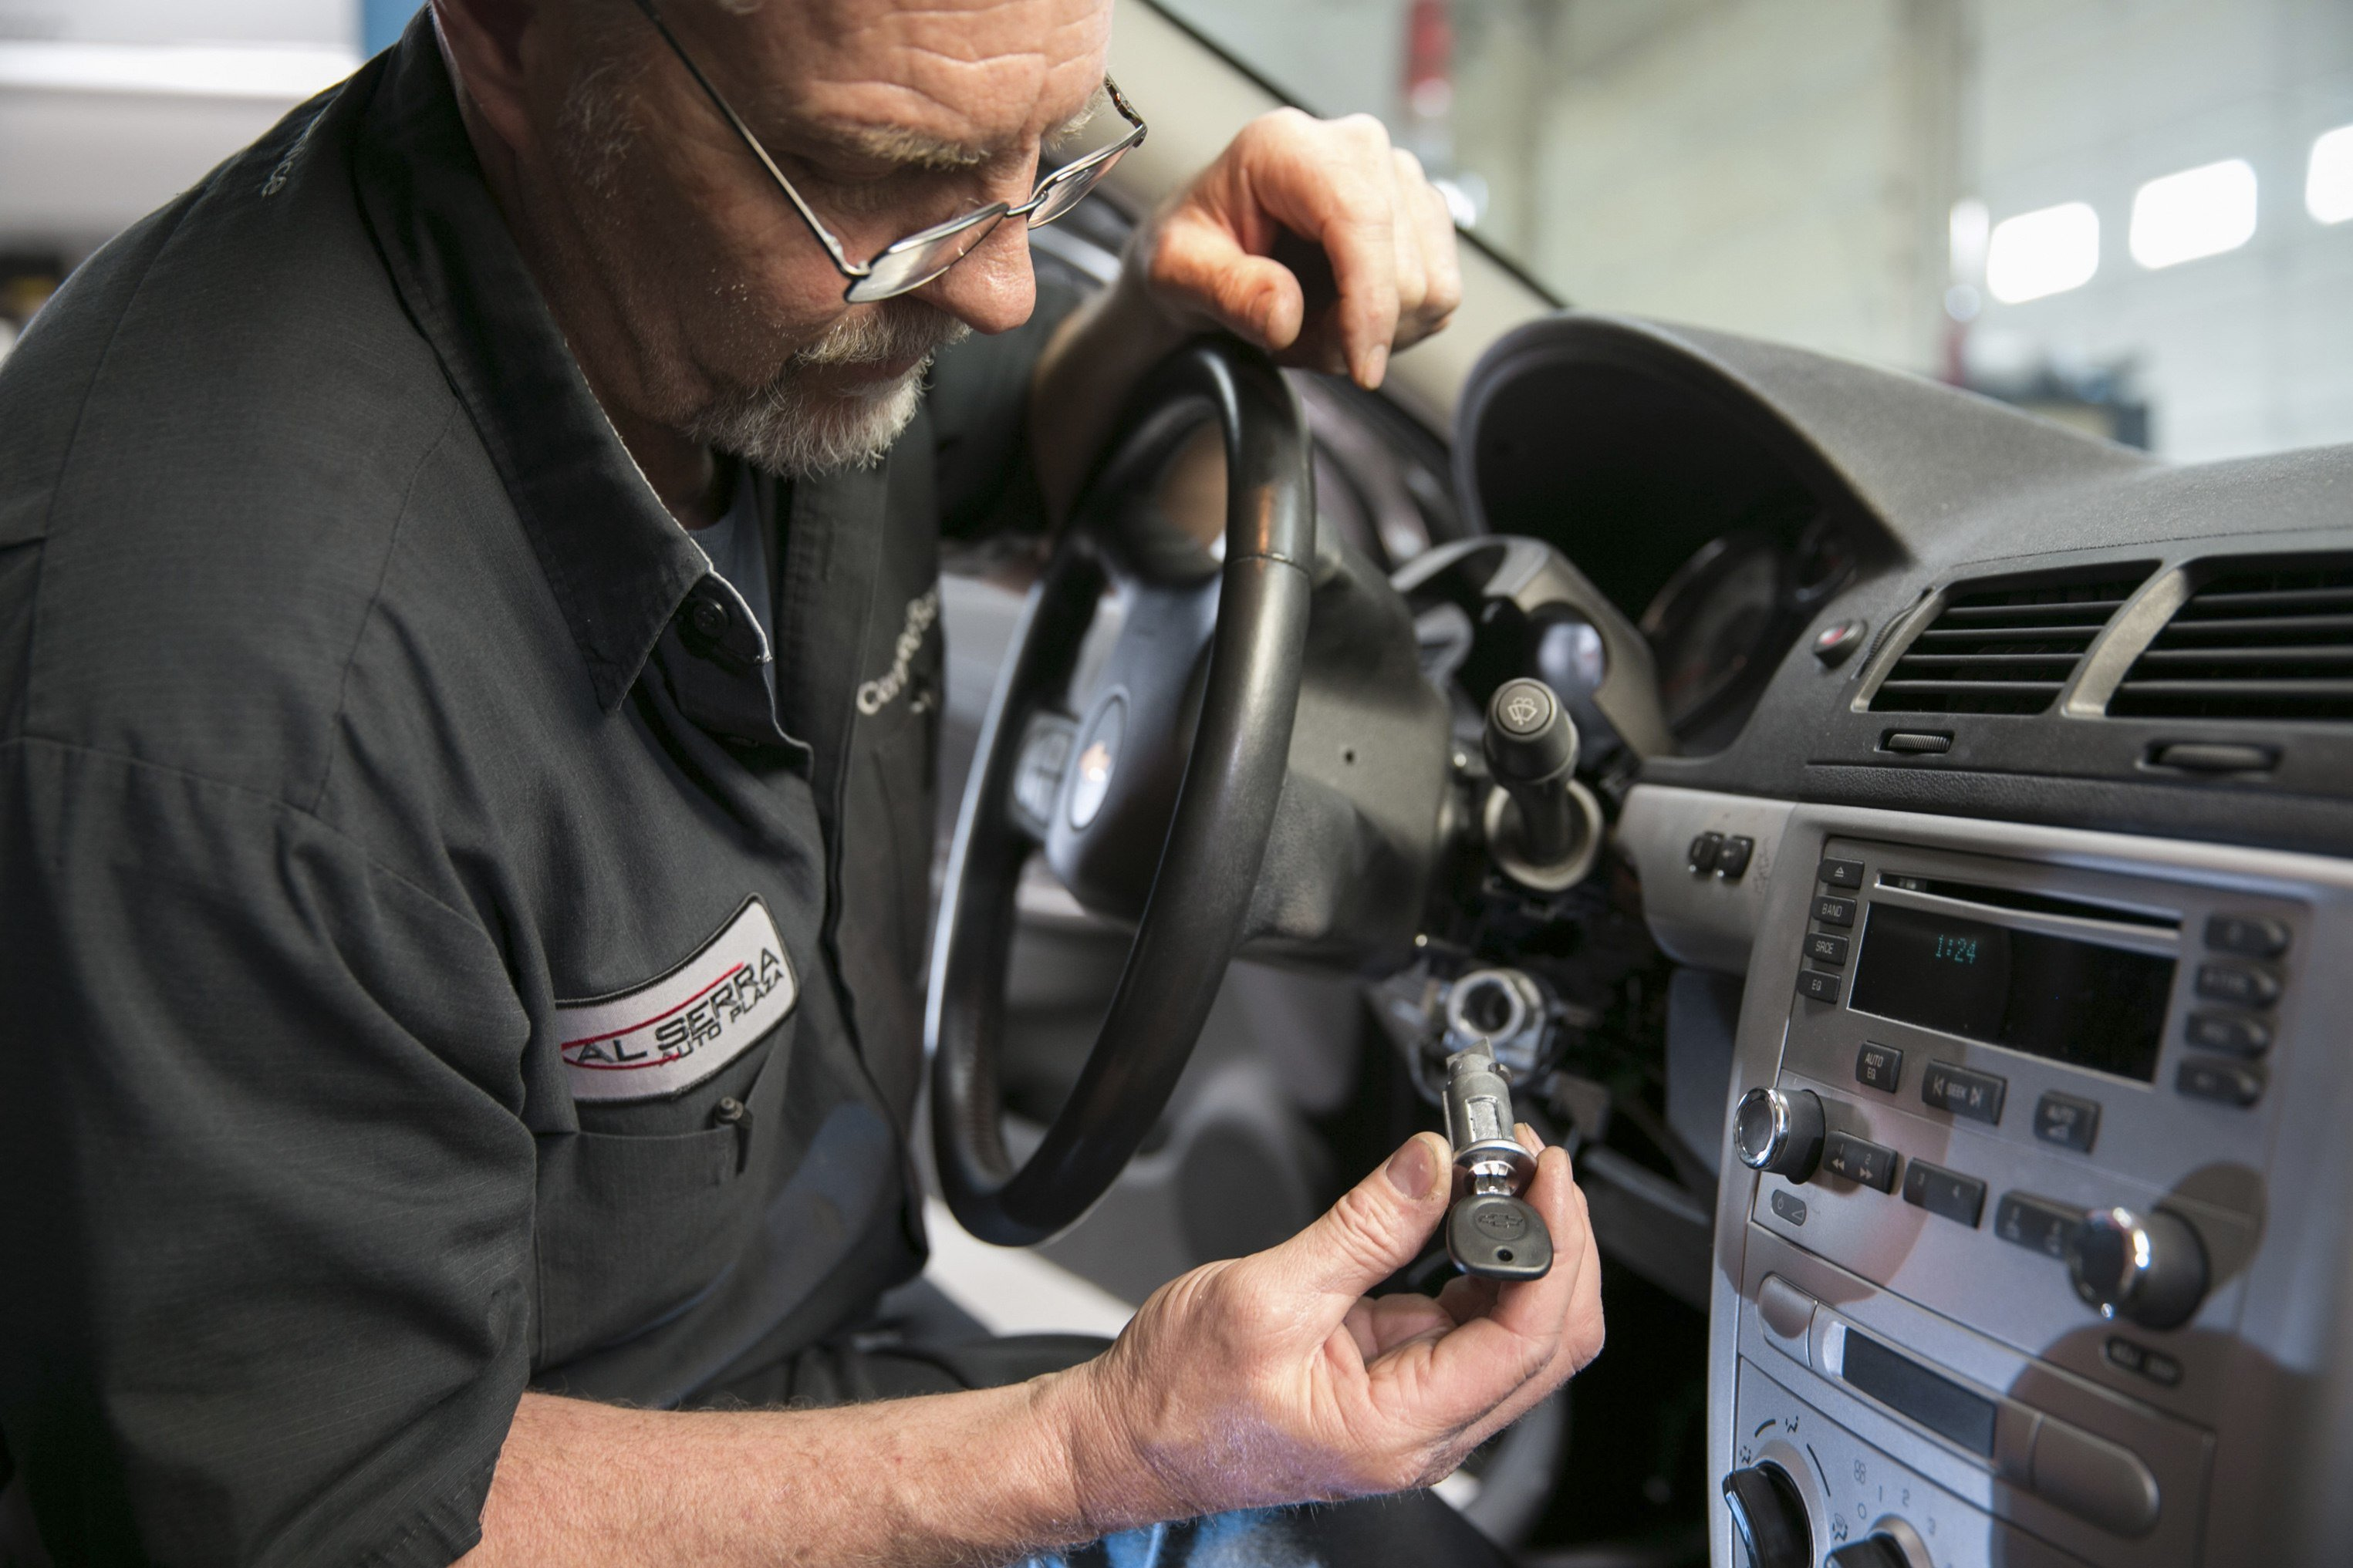 Gary Pittam performs a recall service on a Chevrolet Cobalt at Al Serra Chevrolet in Grand Blanc, Mich., April 17, 2014.